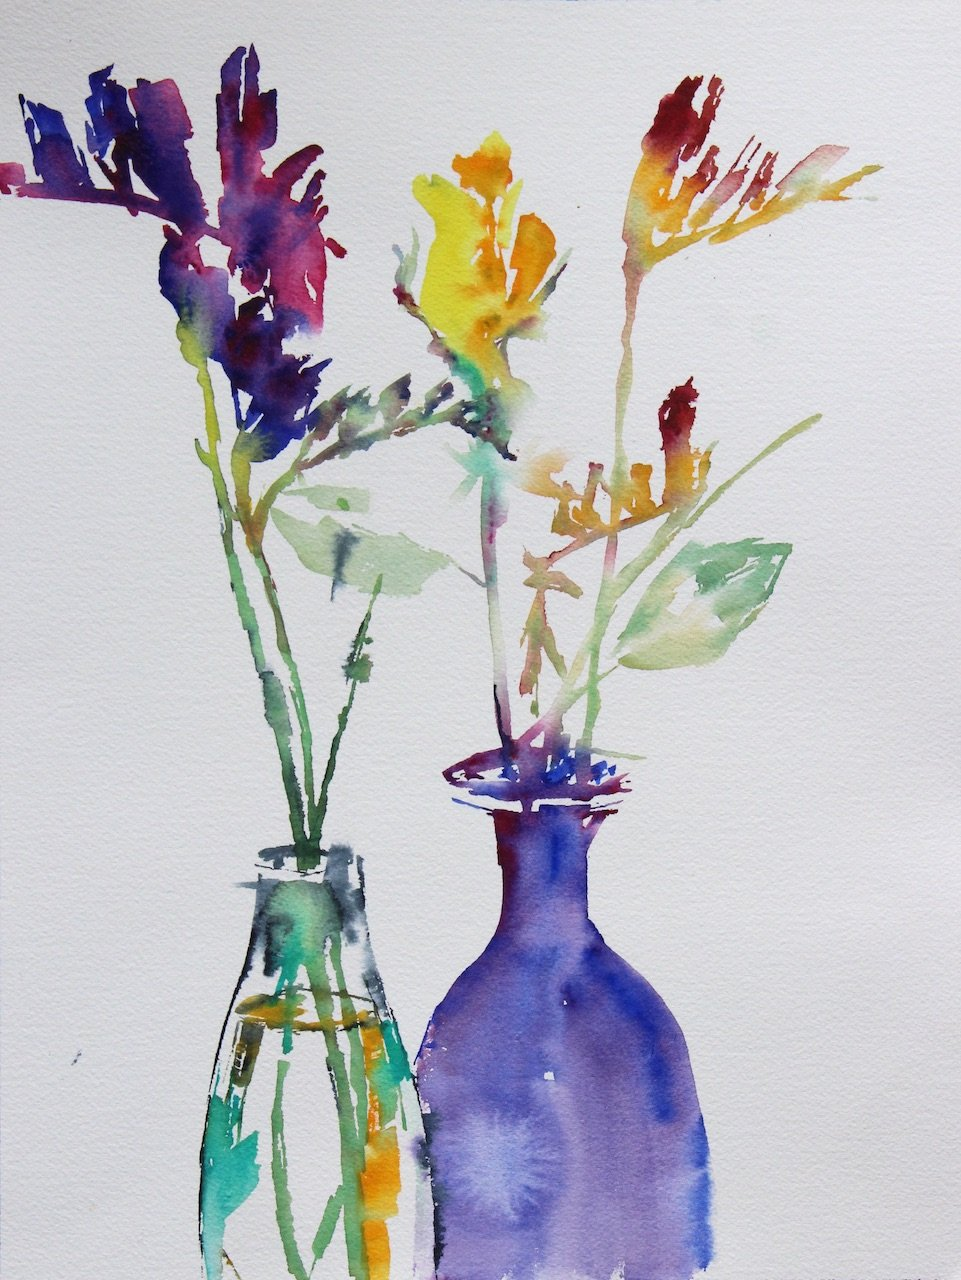 Glass vases and freesias<br />Water colour on 300 gms<br />Arches 41 cm x 31 cm